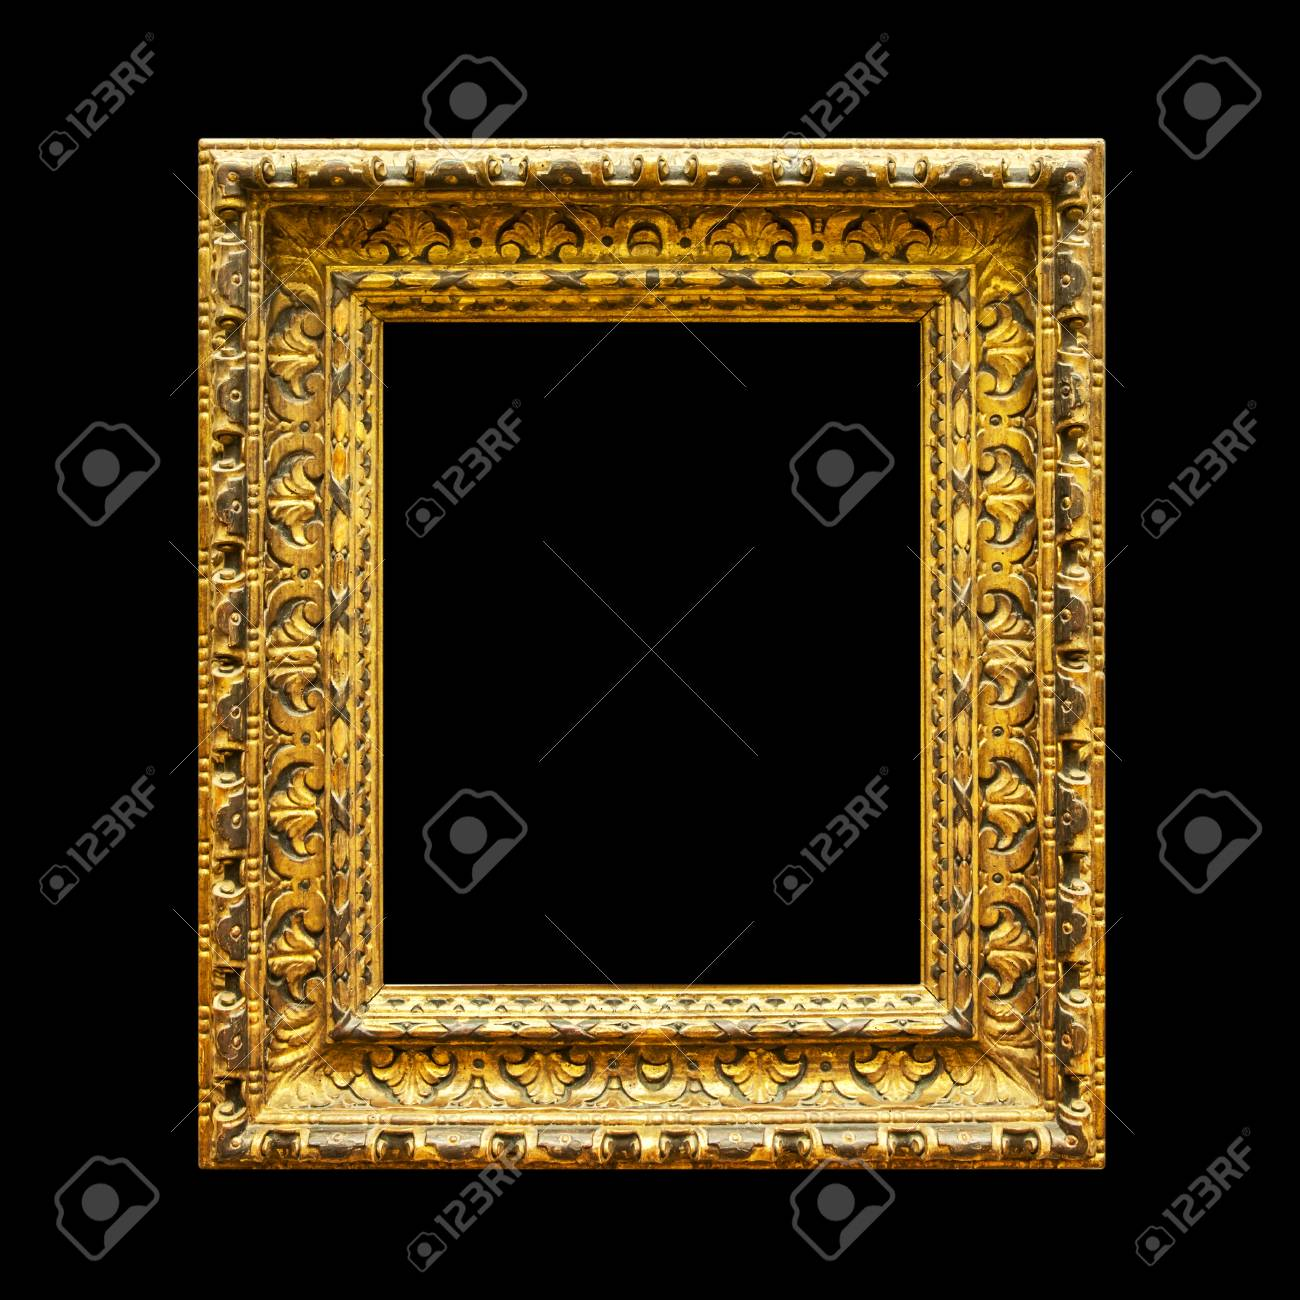 776bb4eb73ea Old ornate wooden frame isolated on black background Stock Photo - 95466060